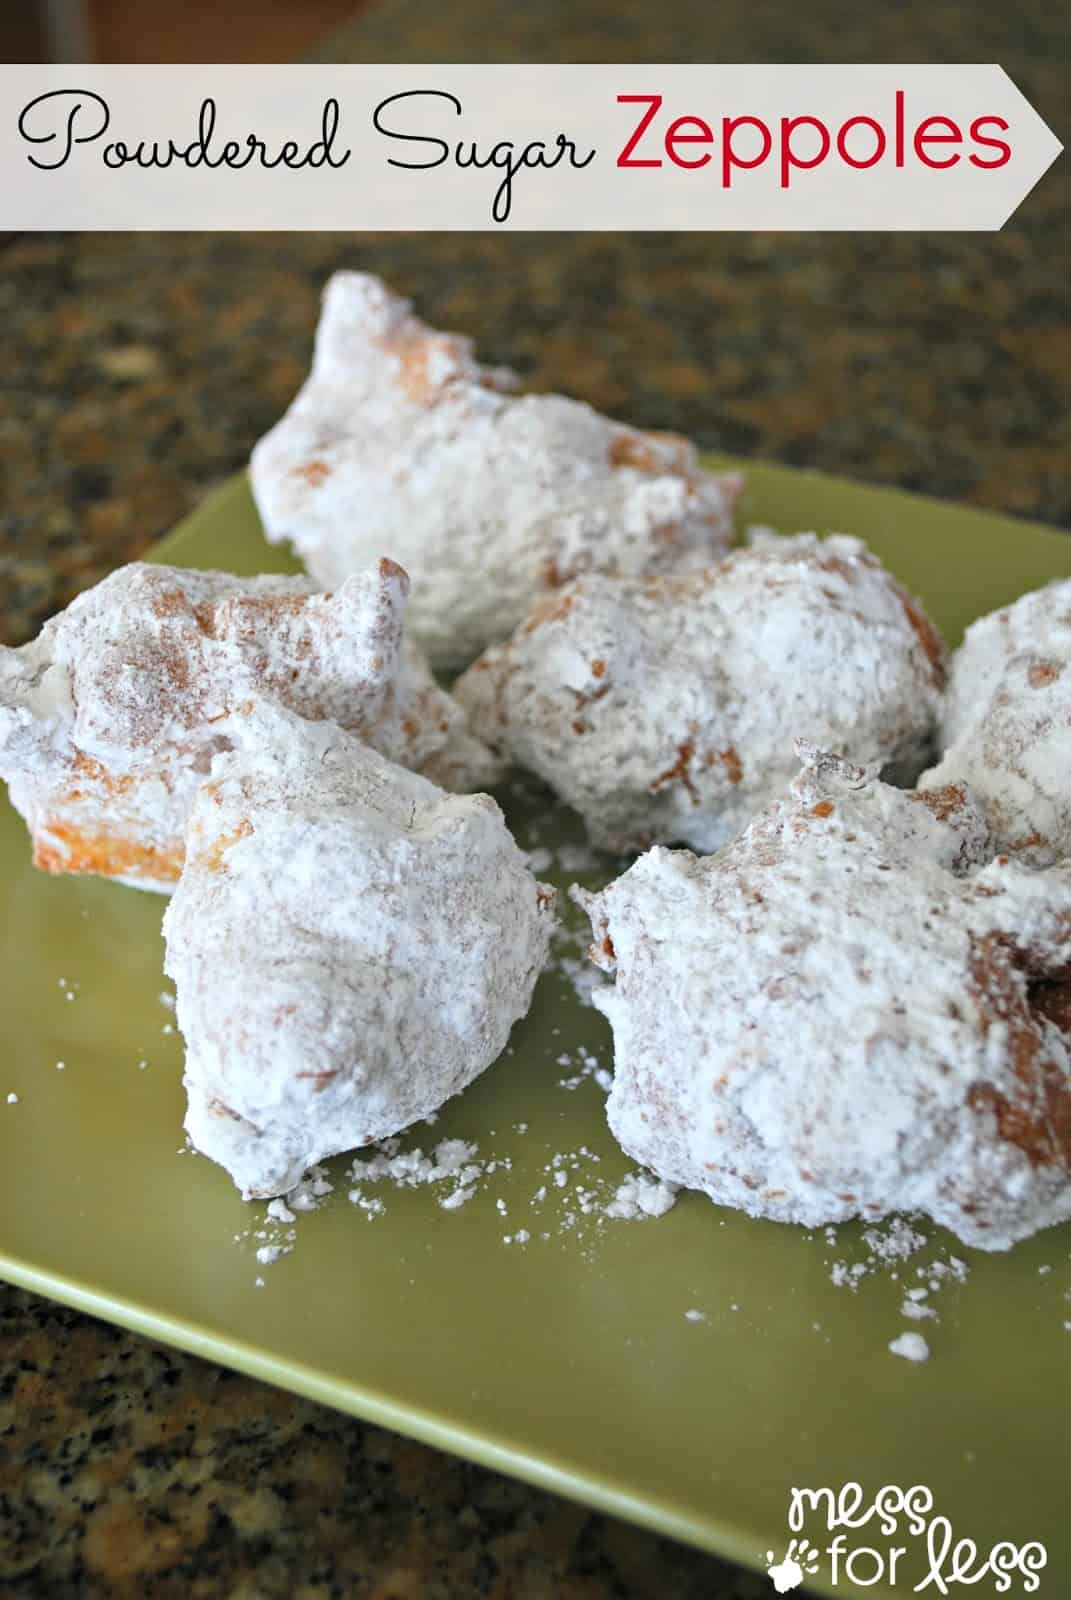 Powdered Sugar Zeppoles - Just like you get at a New York Street Festival #sponsored #KeepGoodGoing